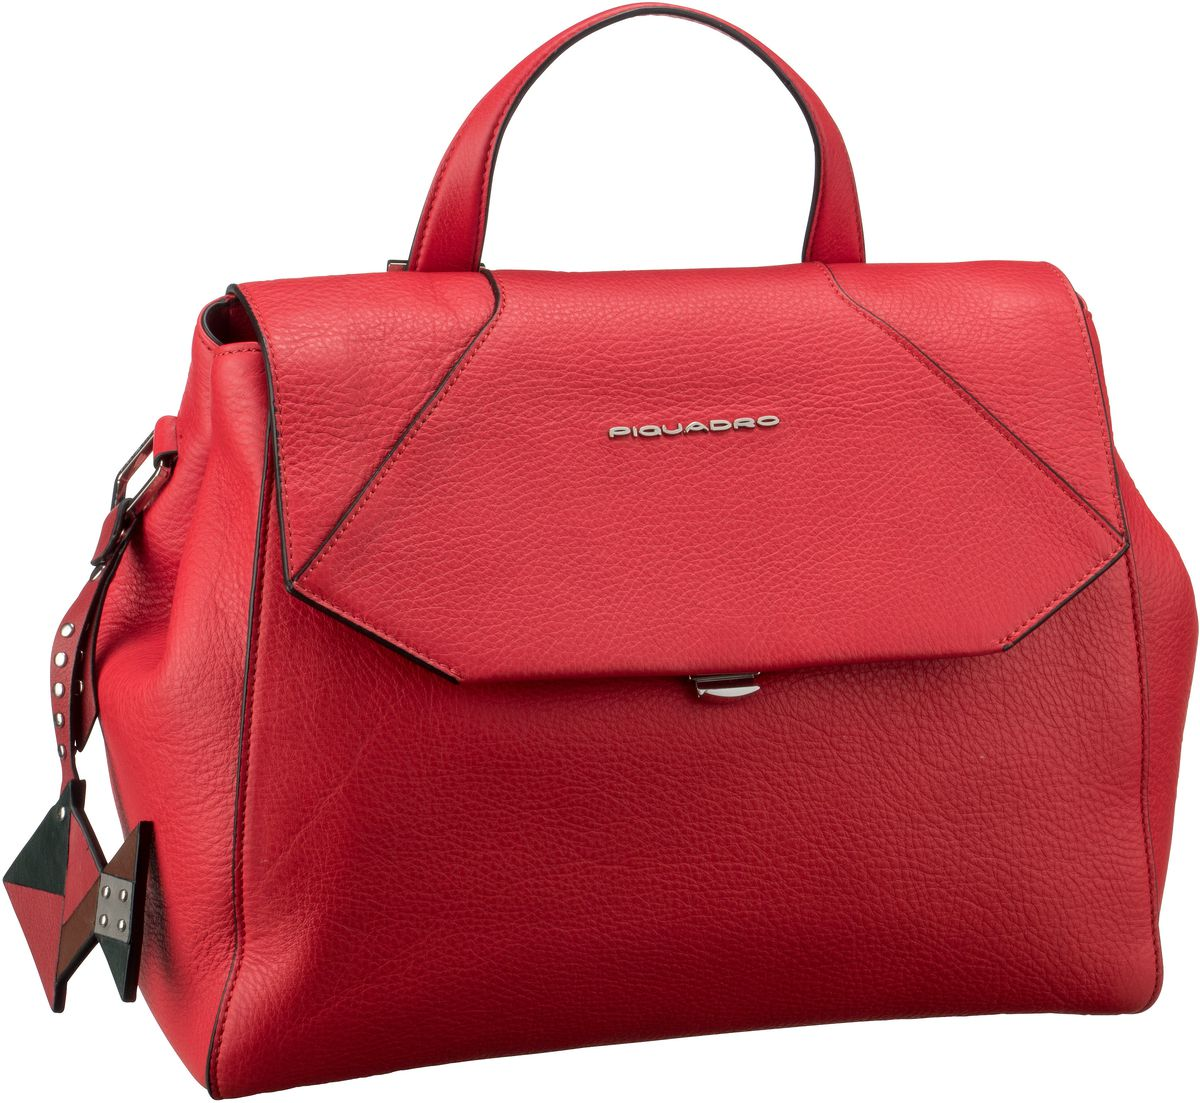 Handtasche Muse 4628 Rosso